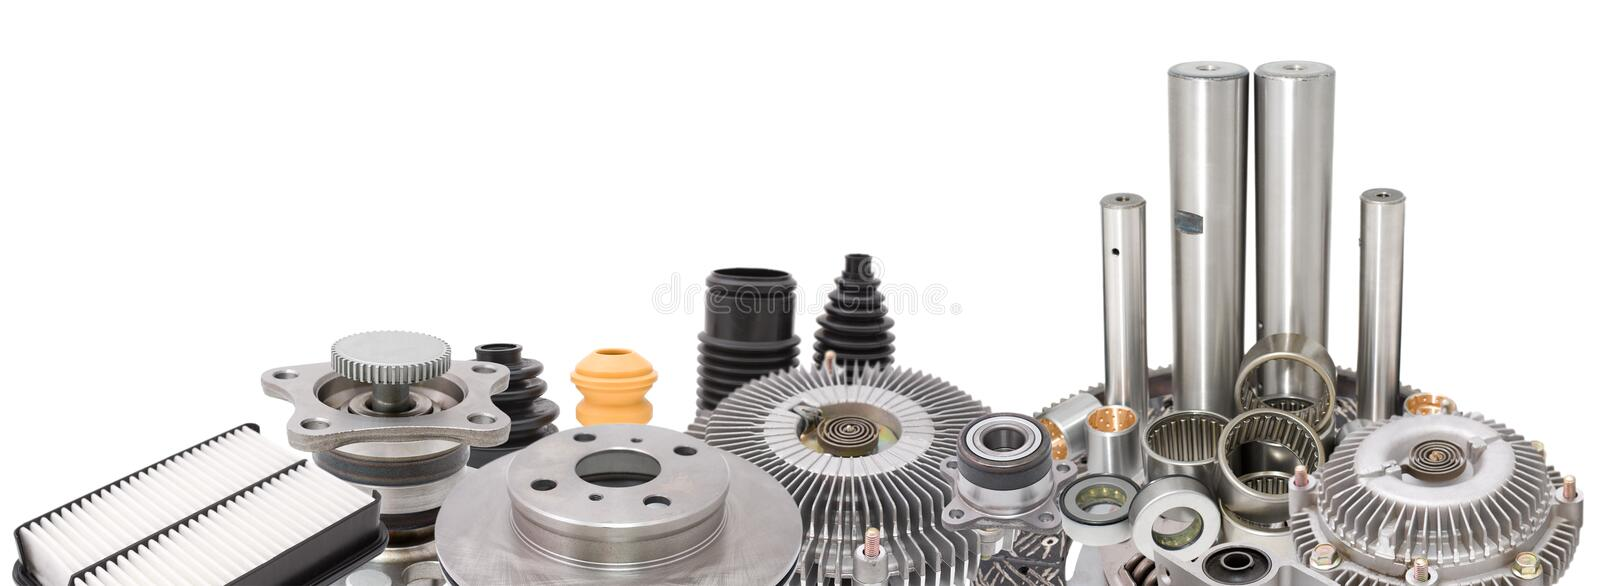 Auto parts border royalty free stock photography